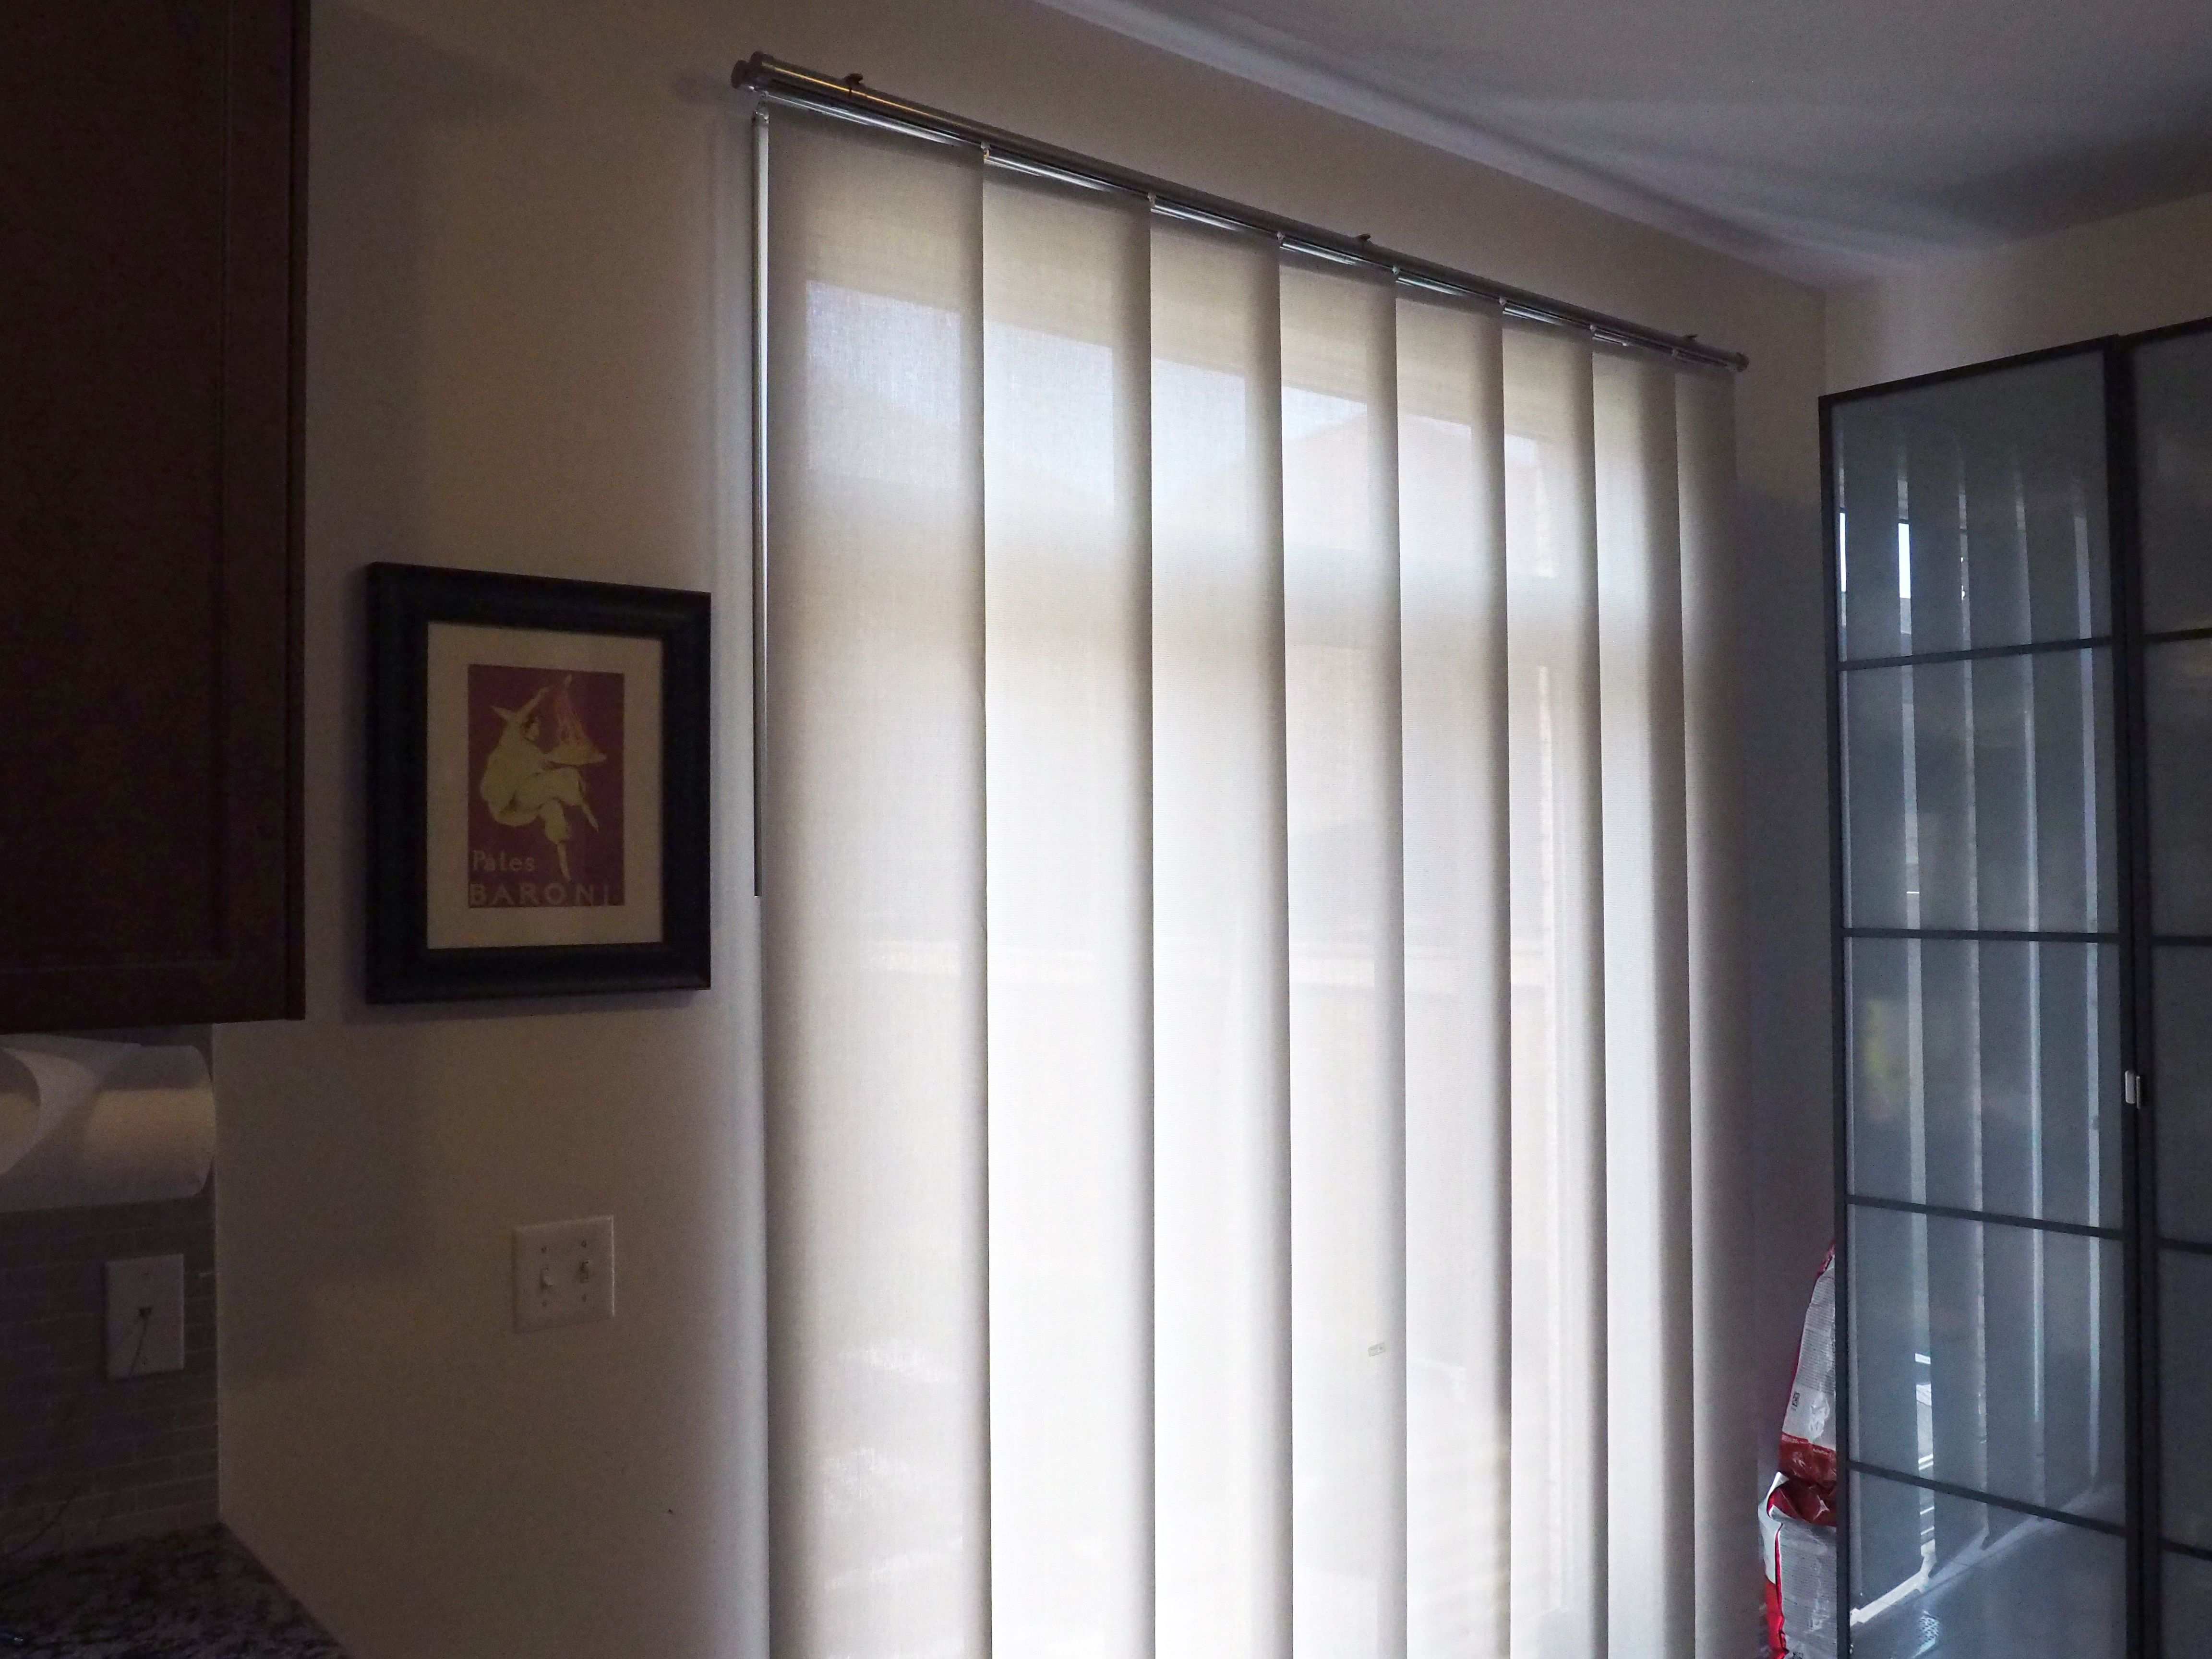 glides gecco sliding panel blinds cecco